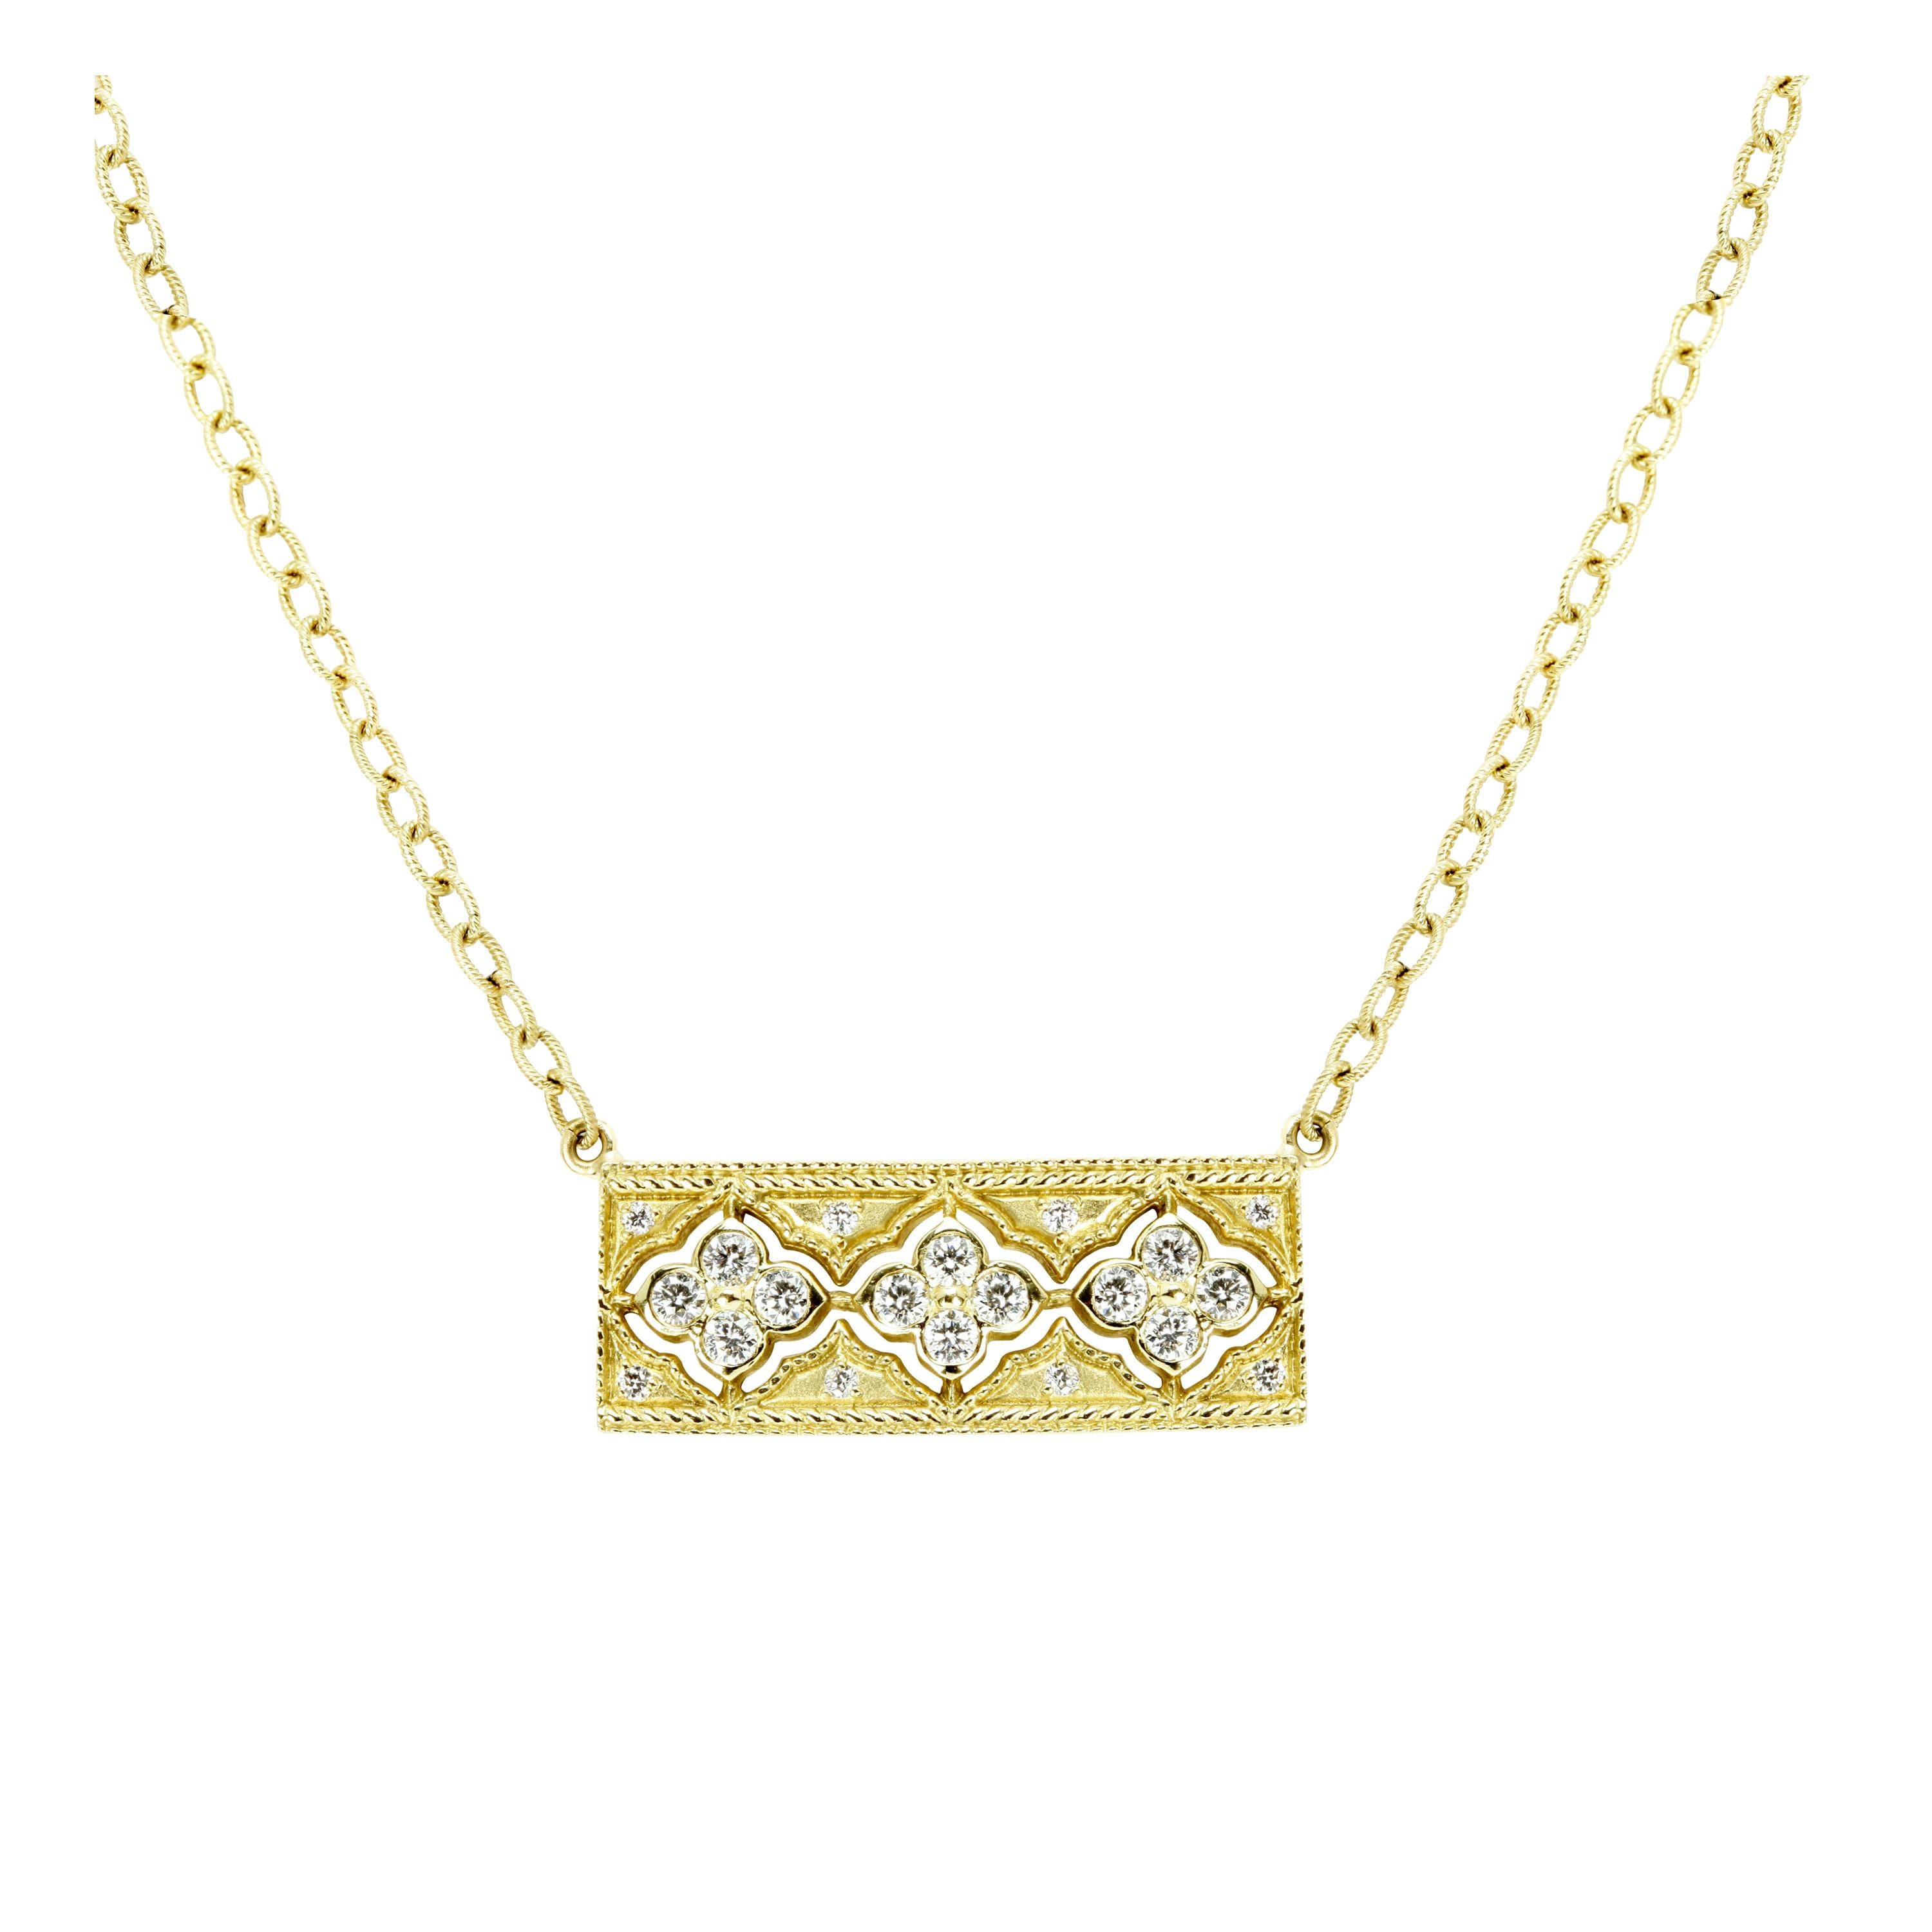 Stambolian Yellow Gold and Diamond Bar Pendant Necklace